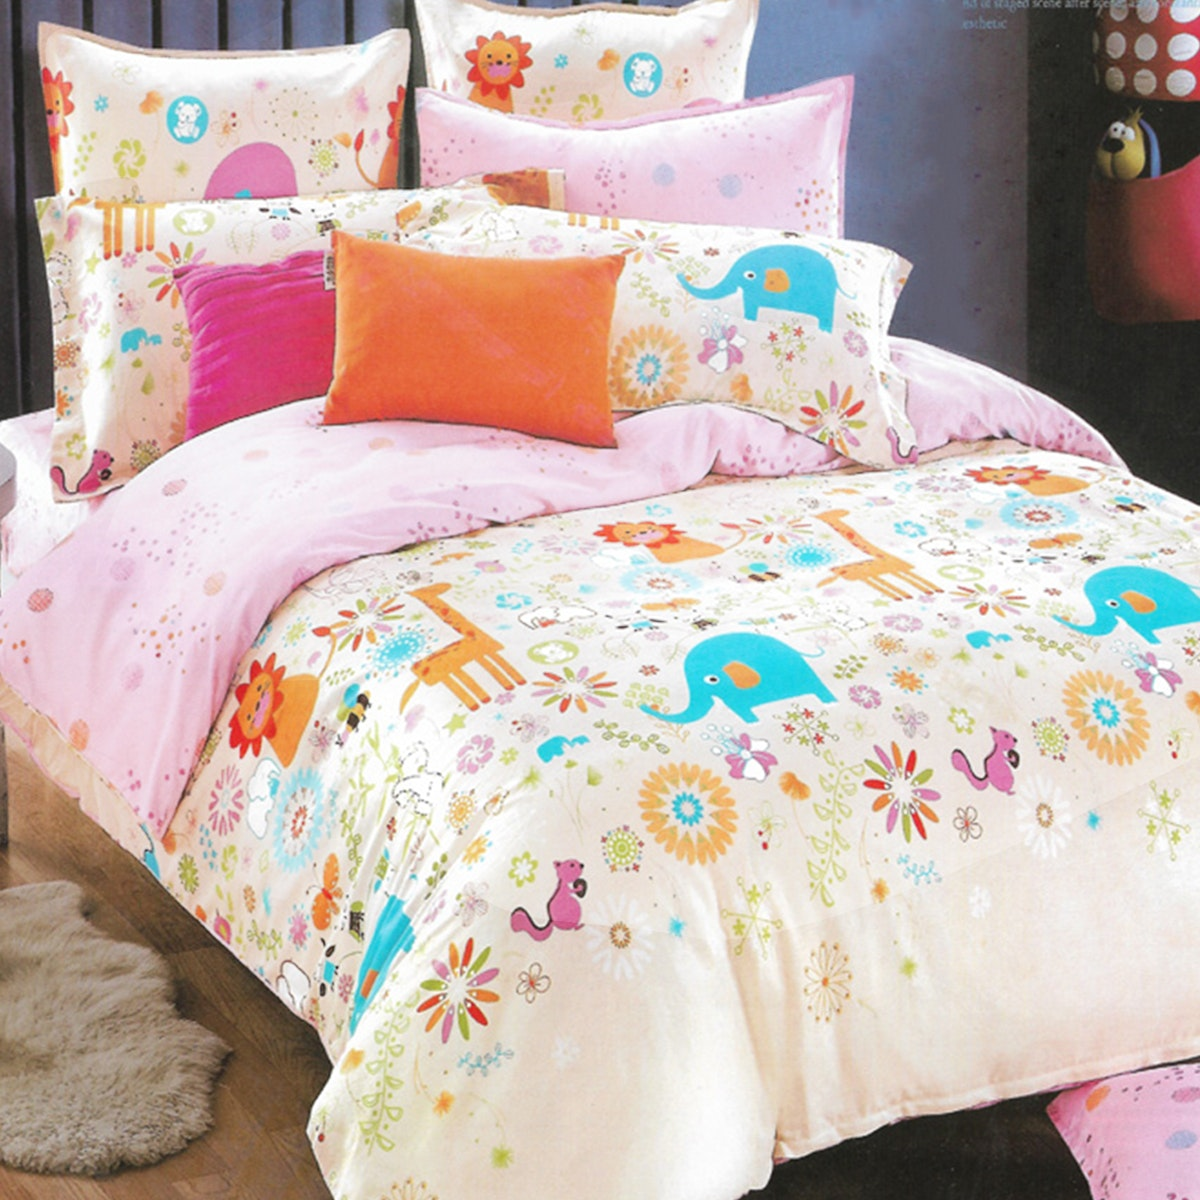 Sleep Buddy Set Sprei dan bed cover Animal Pigmen Katun 180x200x30